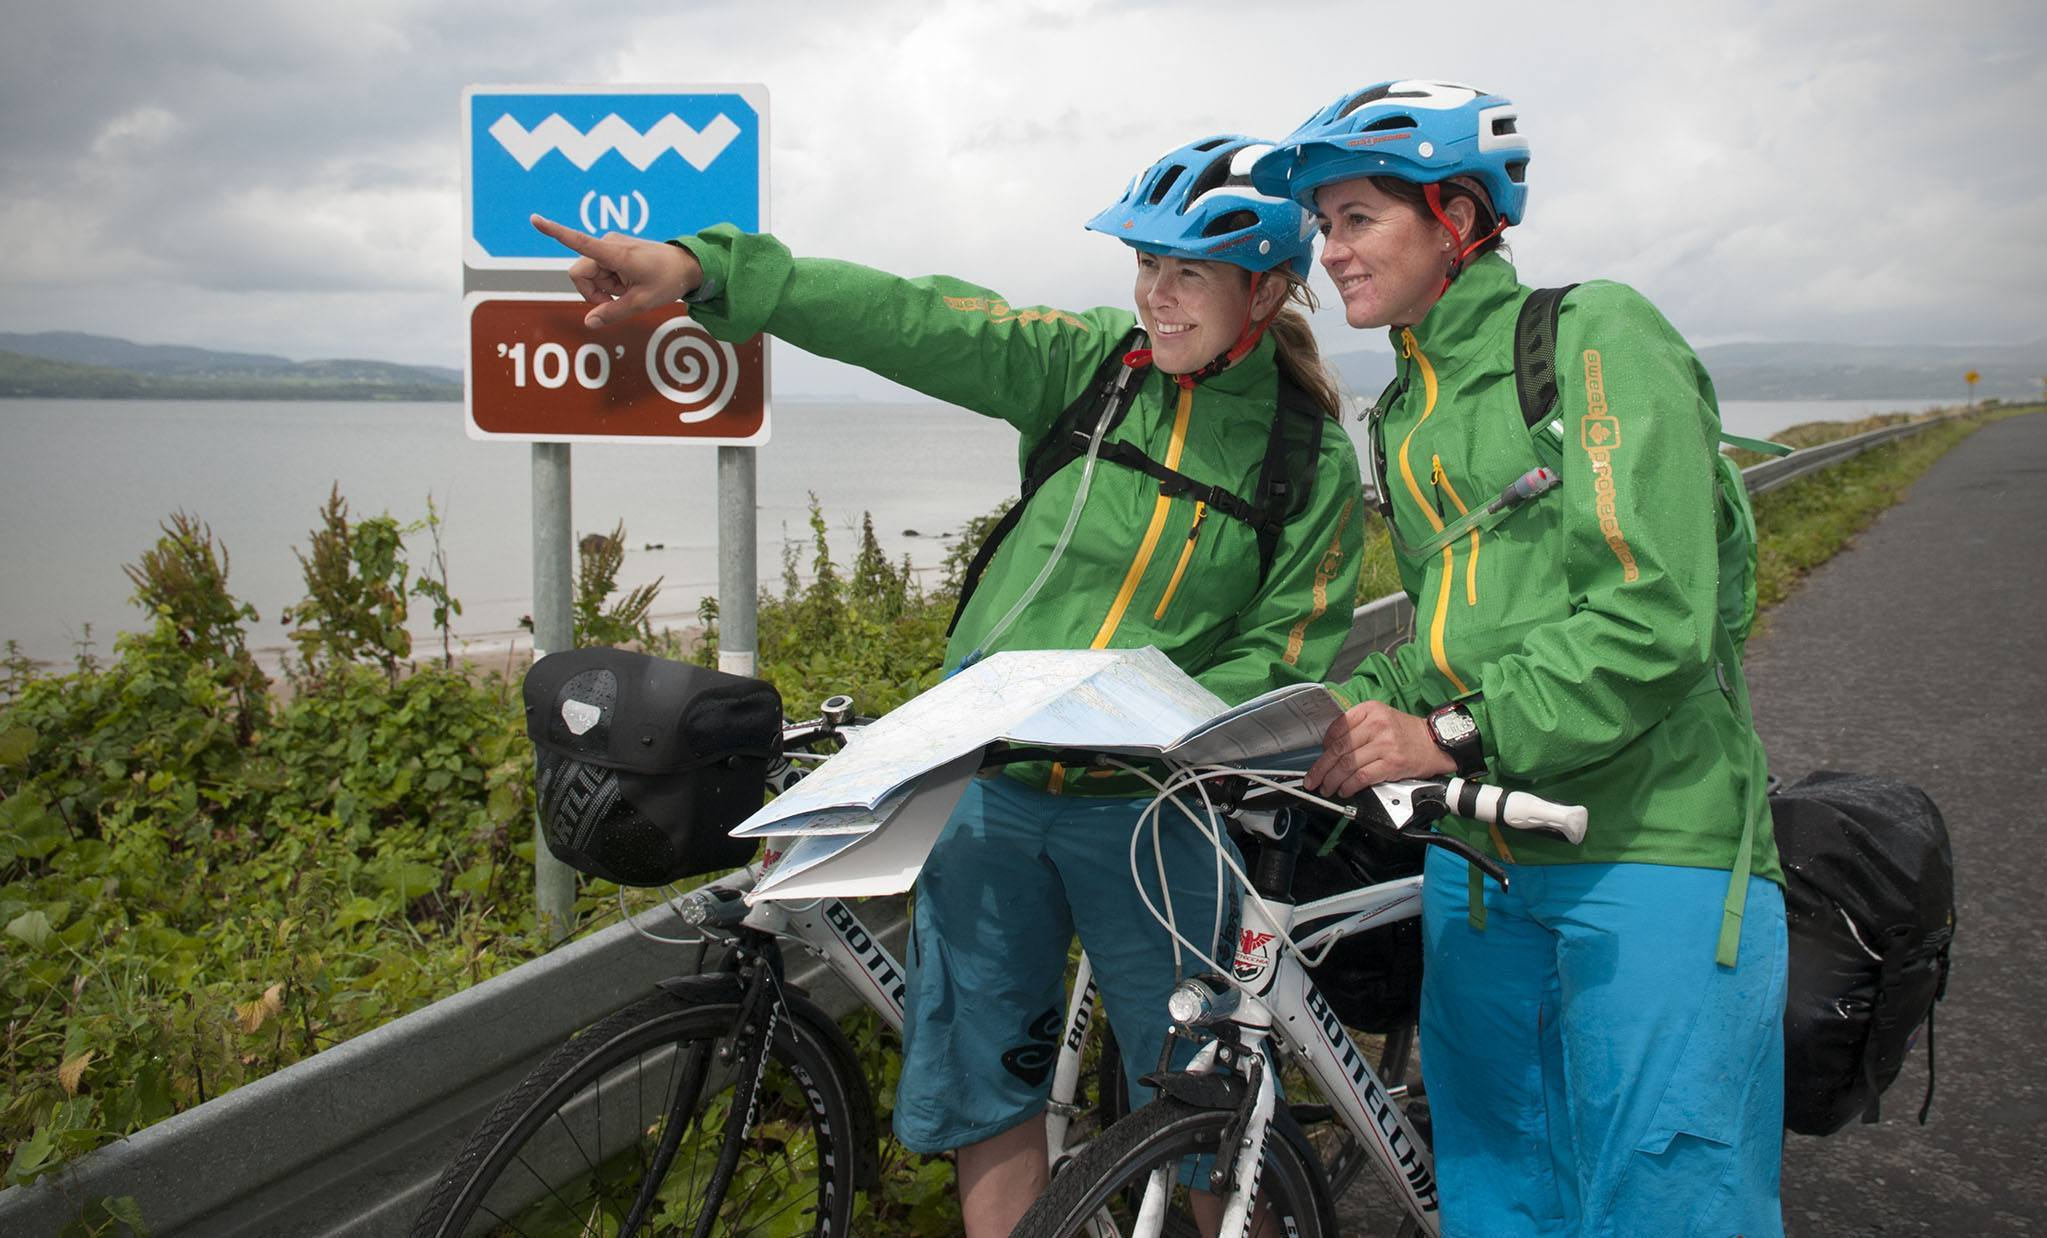 """REPRO FREE 05/08/2014, Buncrana, Co Donegal – Hundreds of thousands of people in Scandinavia, and elsewhere around the world, are set to read all about the Wild Atlantic Way. Finnish travel blogger Satu Vänskä-Westgarth is about to take on the """"challenge of her lifetime"""" – cycling the entire Wild Atlantic Way, or some 2,500 kms along Ireland's western seaboard over the next five weeks. Tourism Ireland invited Satu to undertake the marathon cycle – to experience our newest visitor attraction and then inspire her readers and followers to come and discover it for themselves.  PIC SHOWS: Finnish travel blogger Satu Vänskä-Westgarth (left) and her cycling companion Anne-Marit Storødegård, at Lisfannon Beach, Buncrana, as Satu sets off on her challenge to cycle the entire length of the Wild Atlantic Way. They are here as guests of Tourism Ireland. Pic – Evan Logan (no repro fee) Further press info – Sinéad Grace, Tourism Ireland 087-685 9027"""